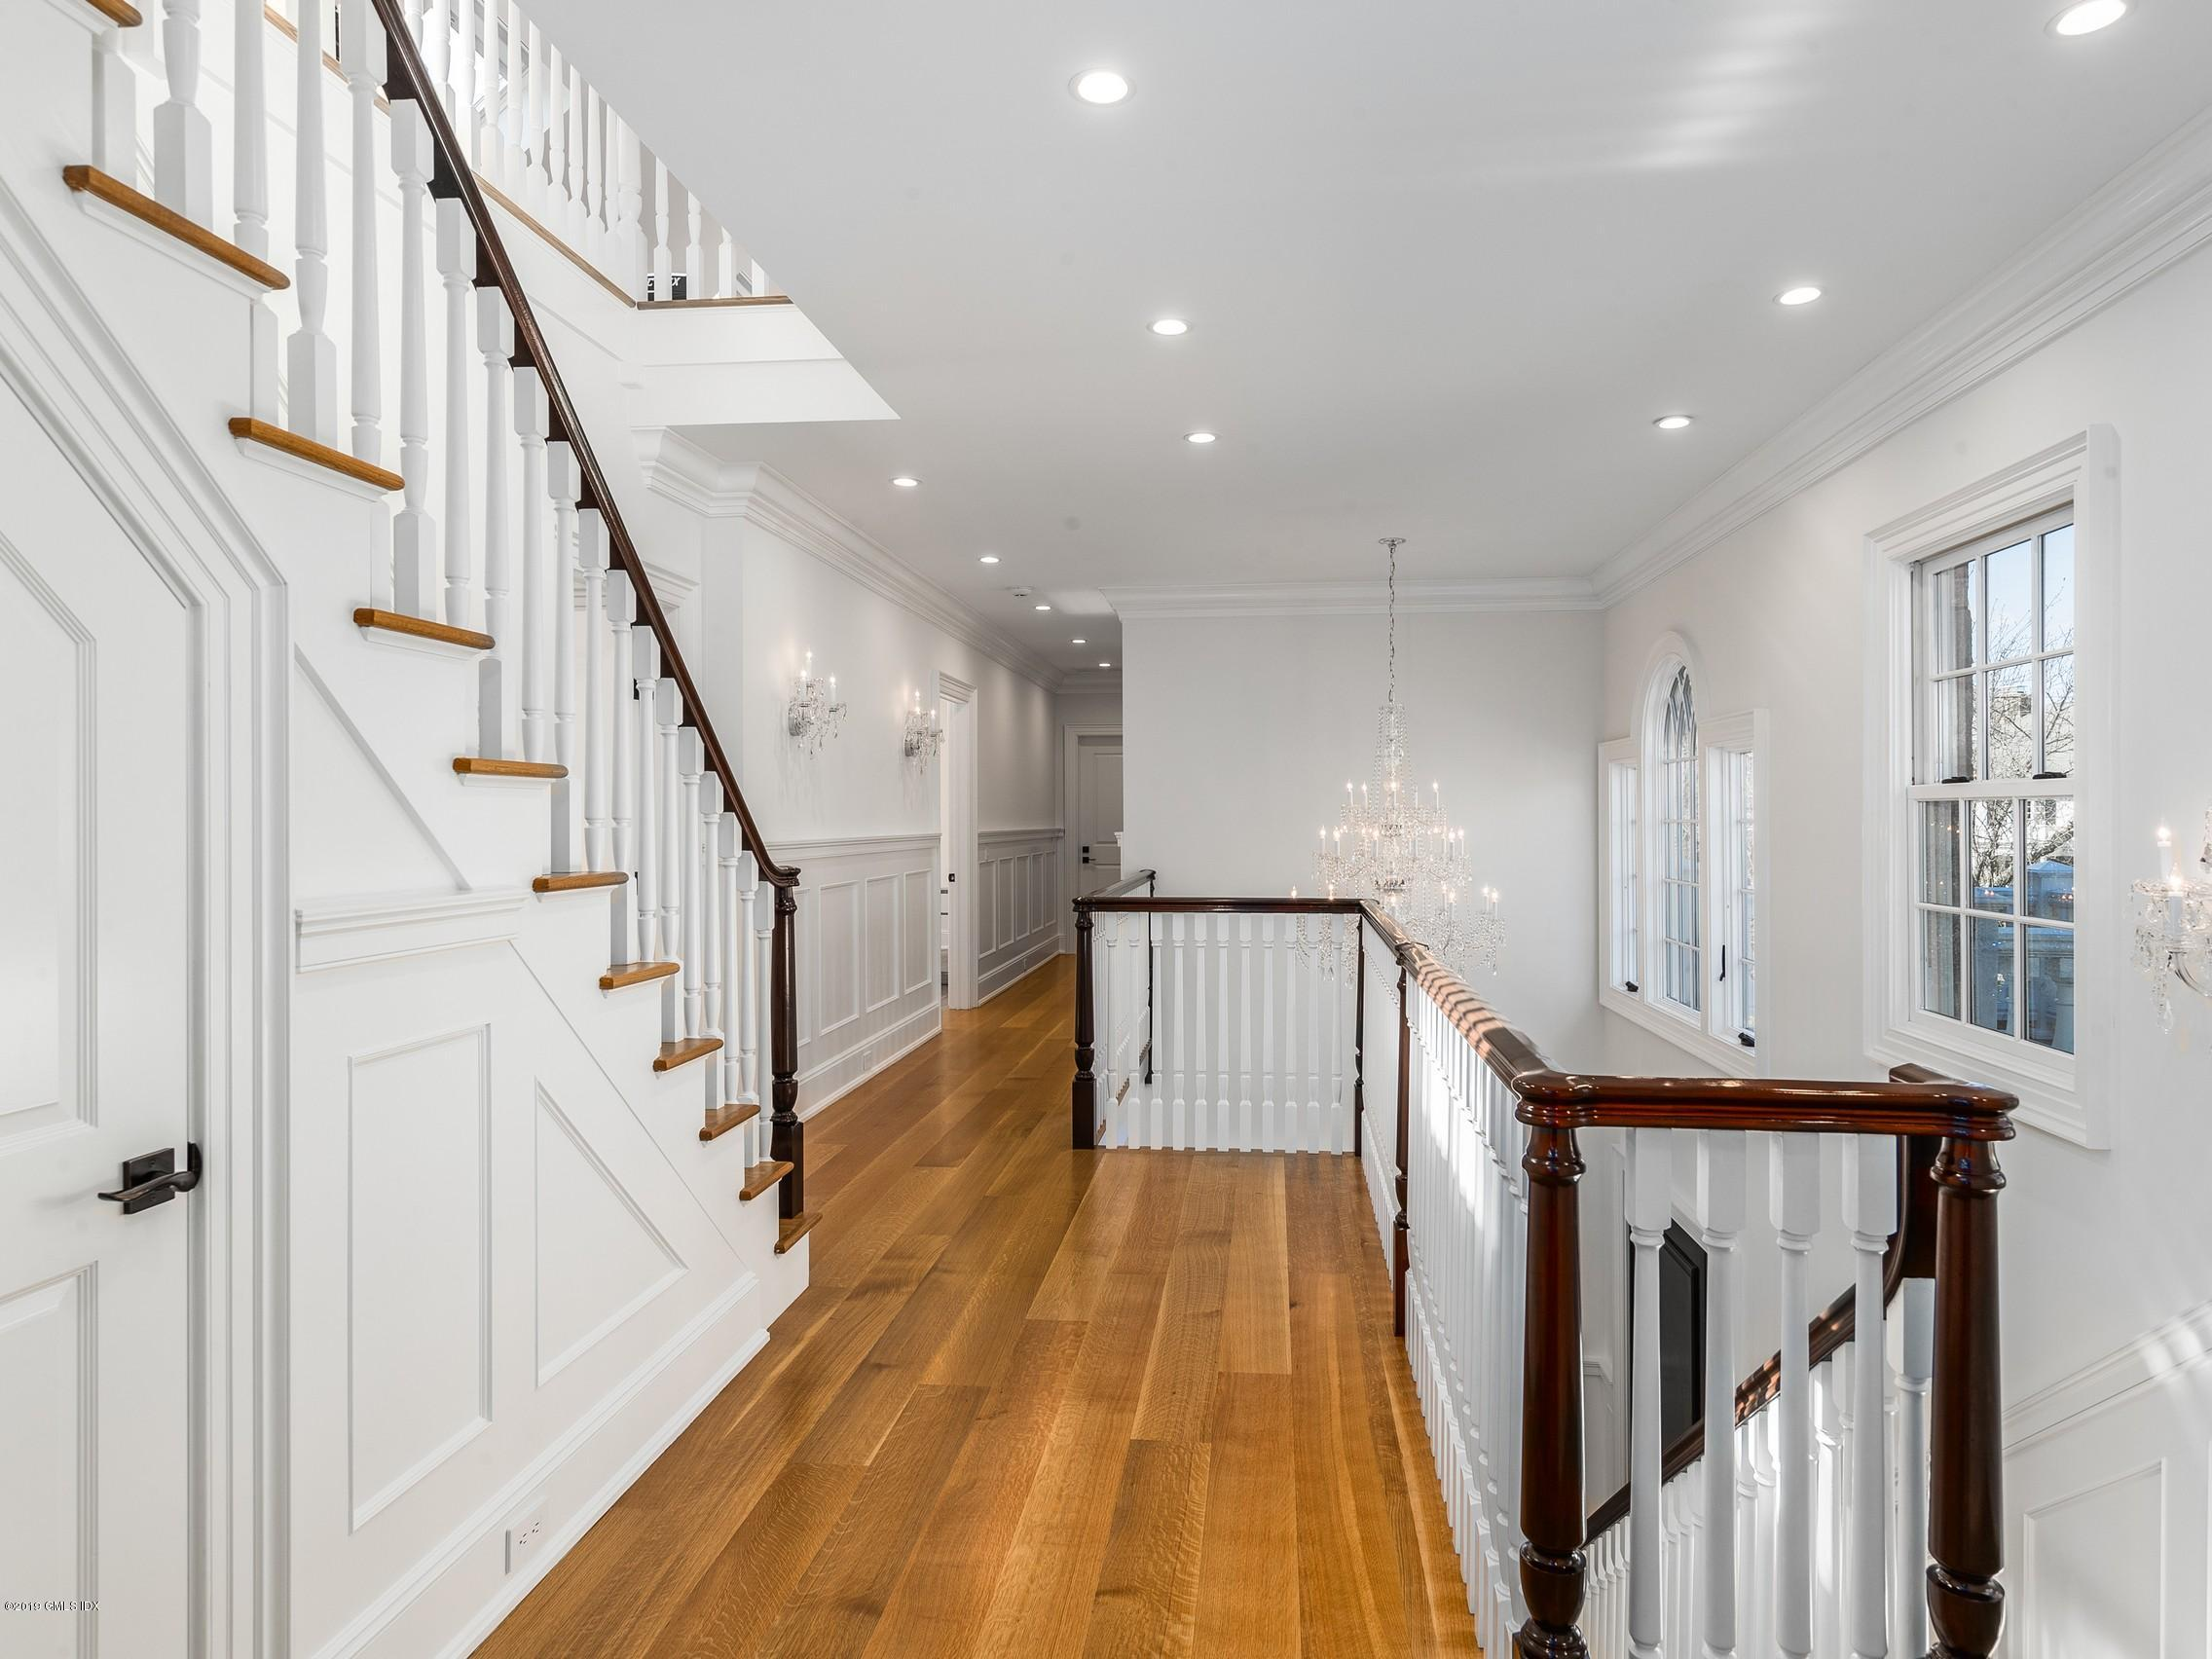 75 Oneida Drive,Greenwich,Connecticut 06830,5 Bedrooms Bedrooms,6 BathroomsBathrooms,Single family,Oneida,106181